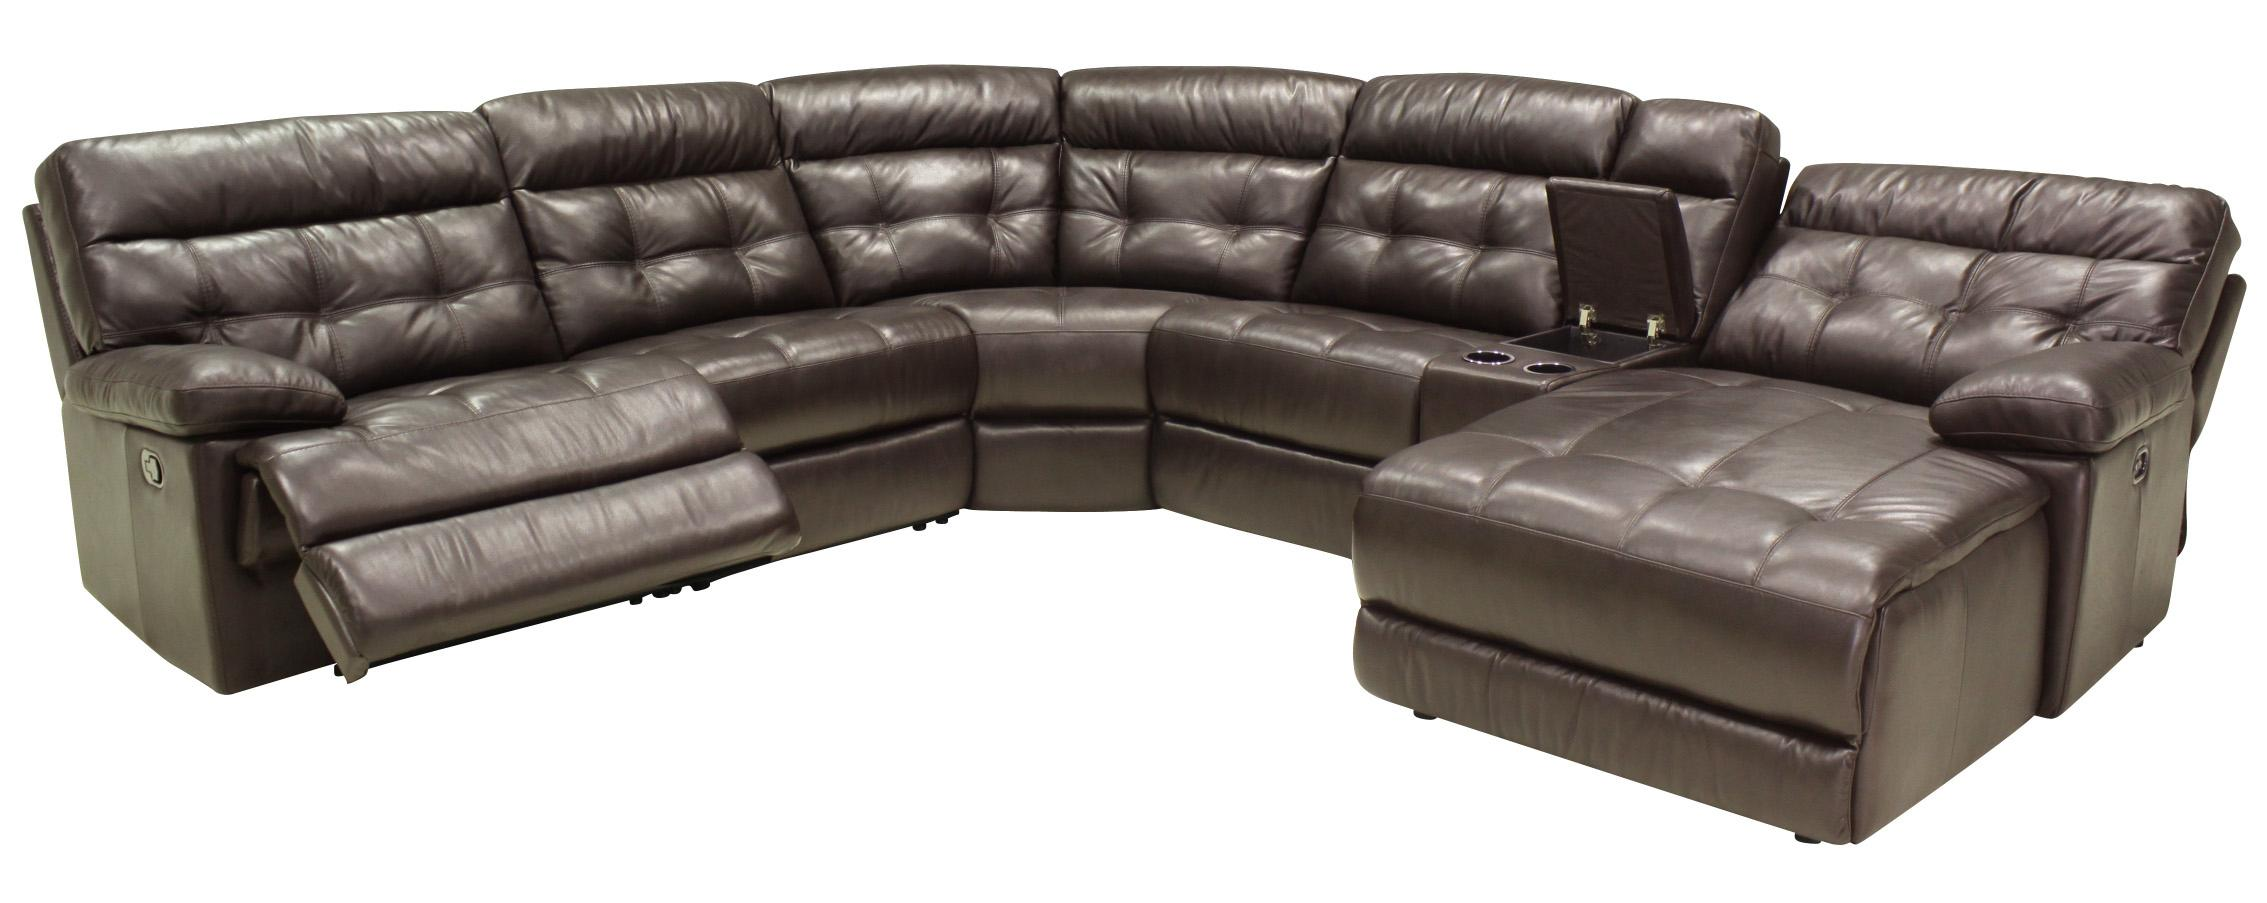 6 Pc Reclining Sectional Sofa w/ RAF Chaise